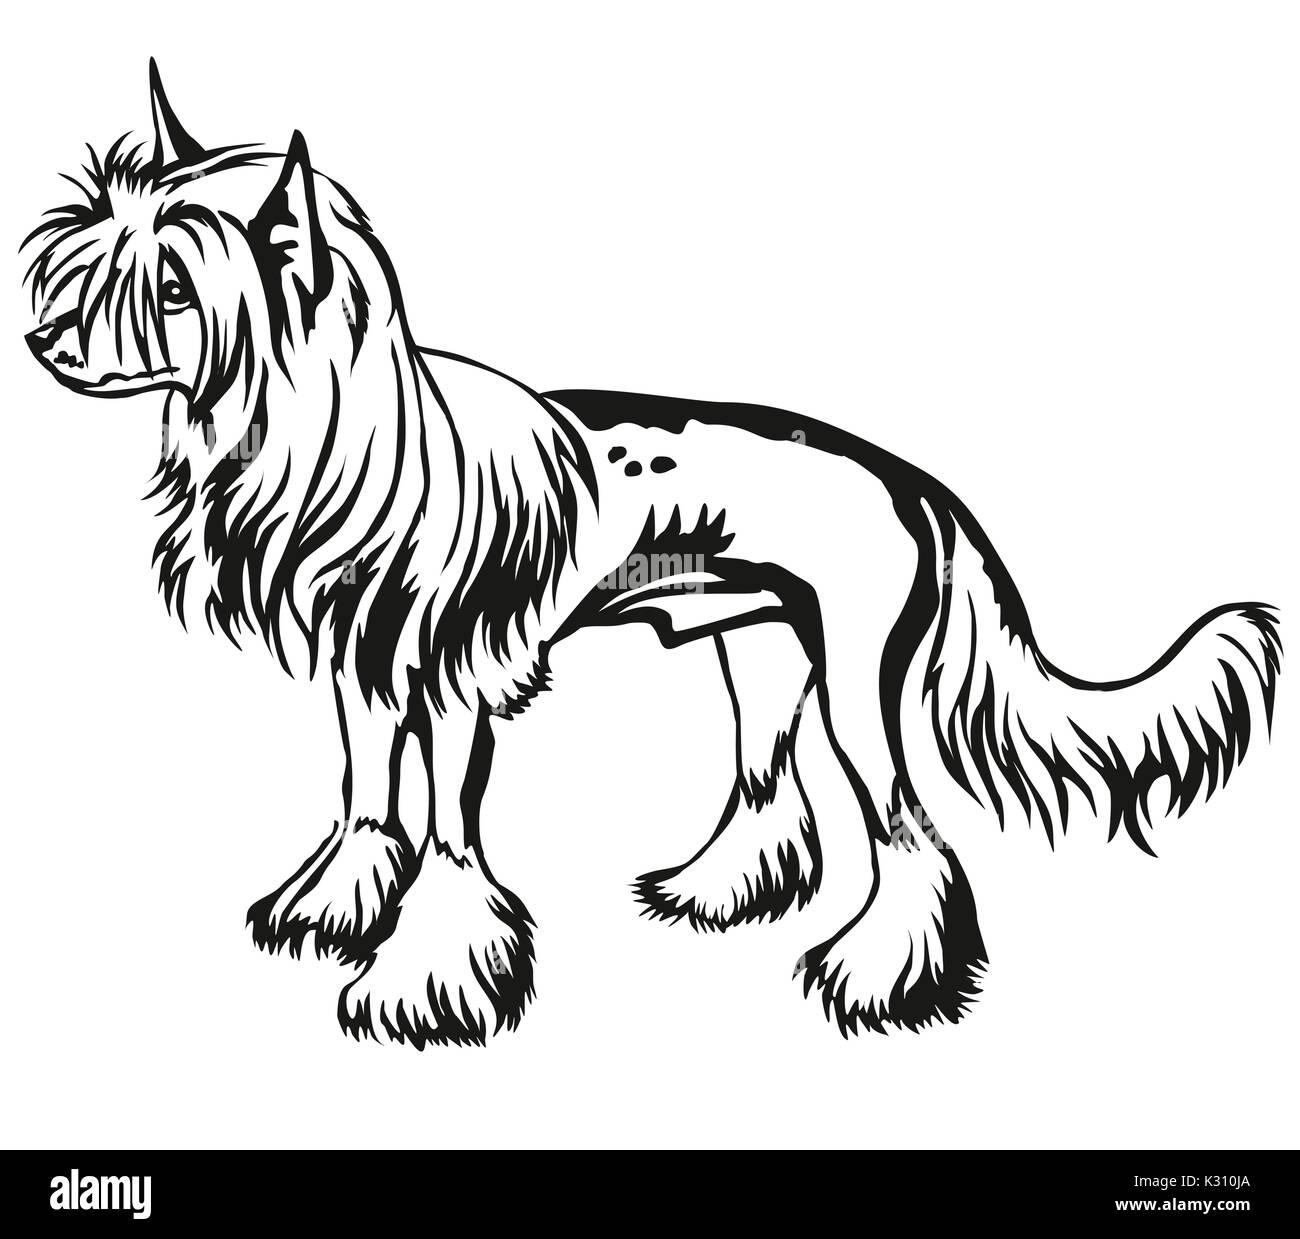 Decorative portrait of standing in profile Chinese Crested Dog, vector isolated illustration in black color on white background - Stock Vector